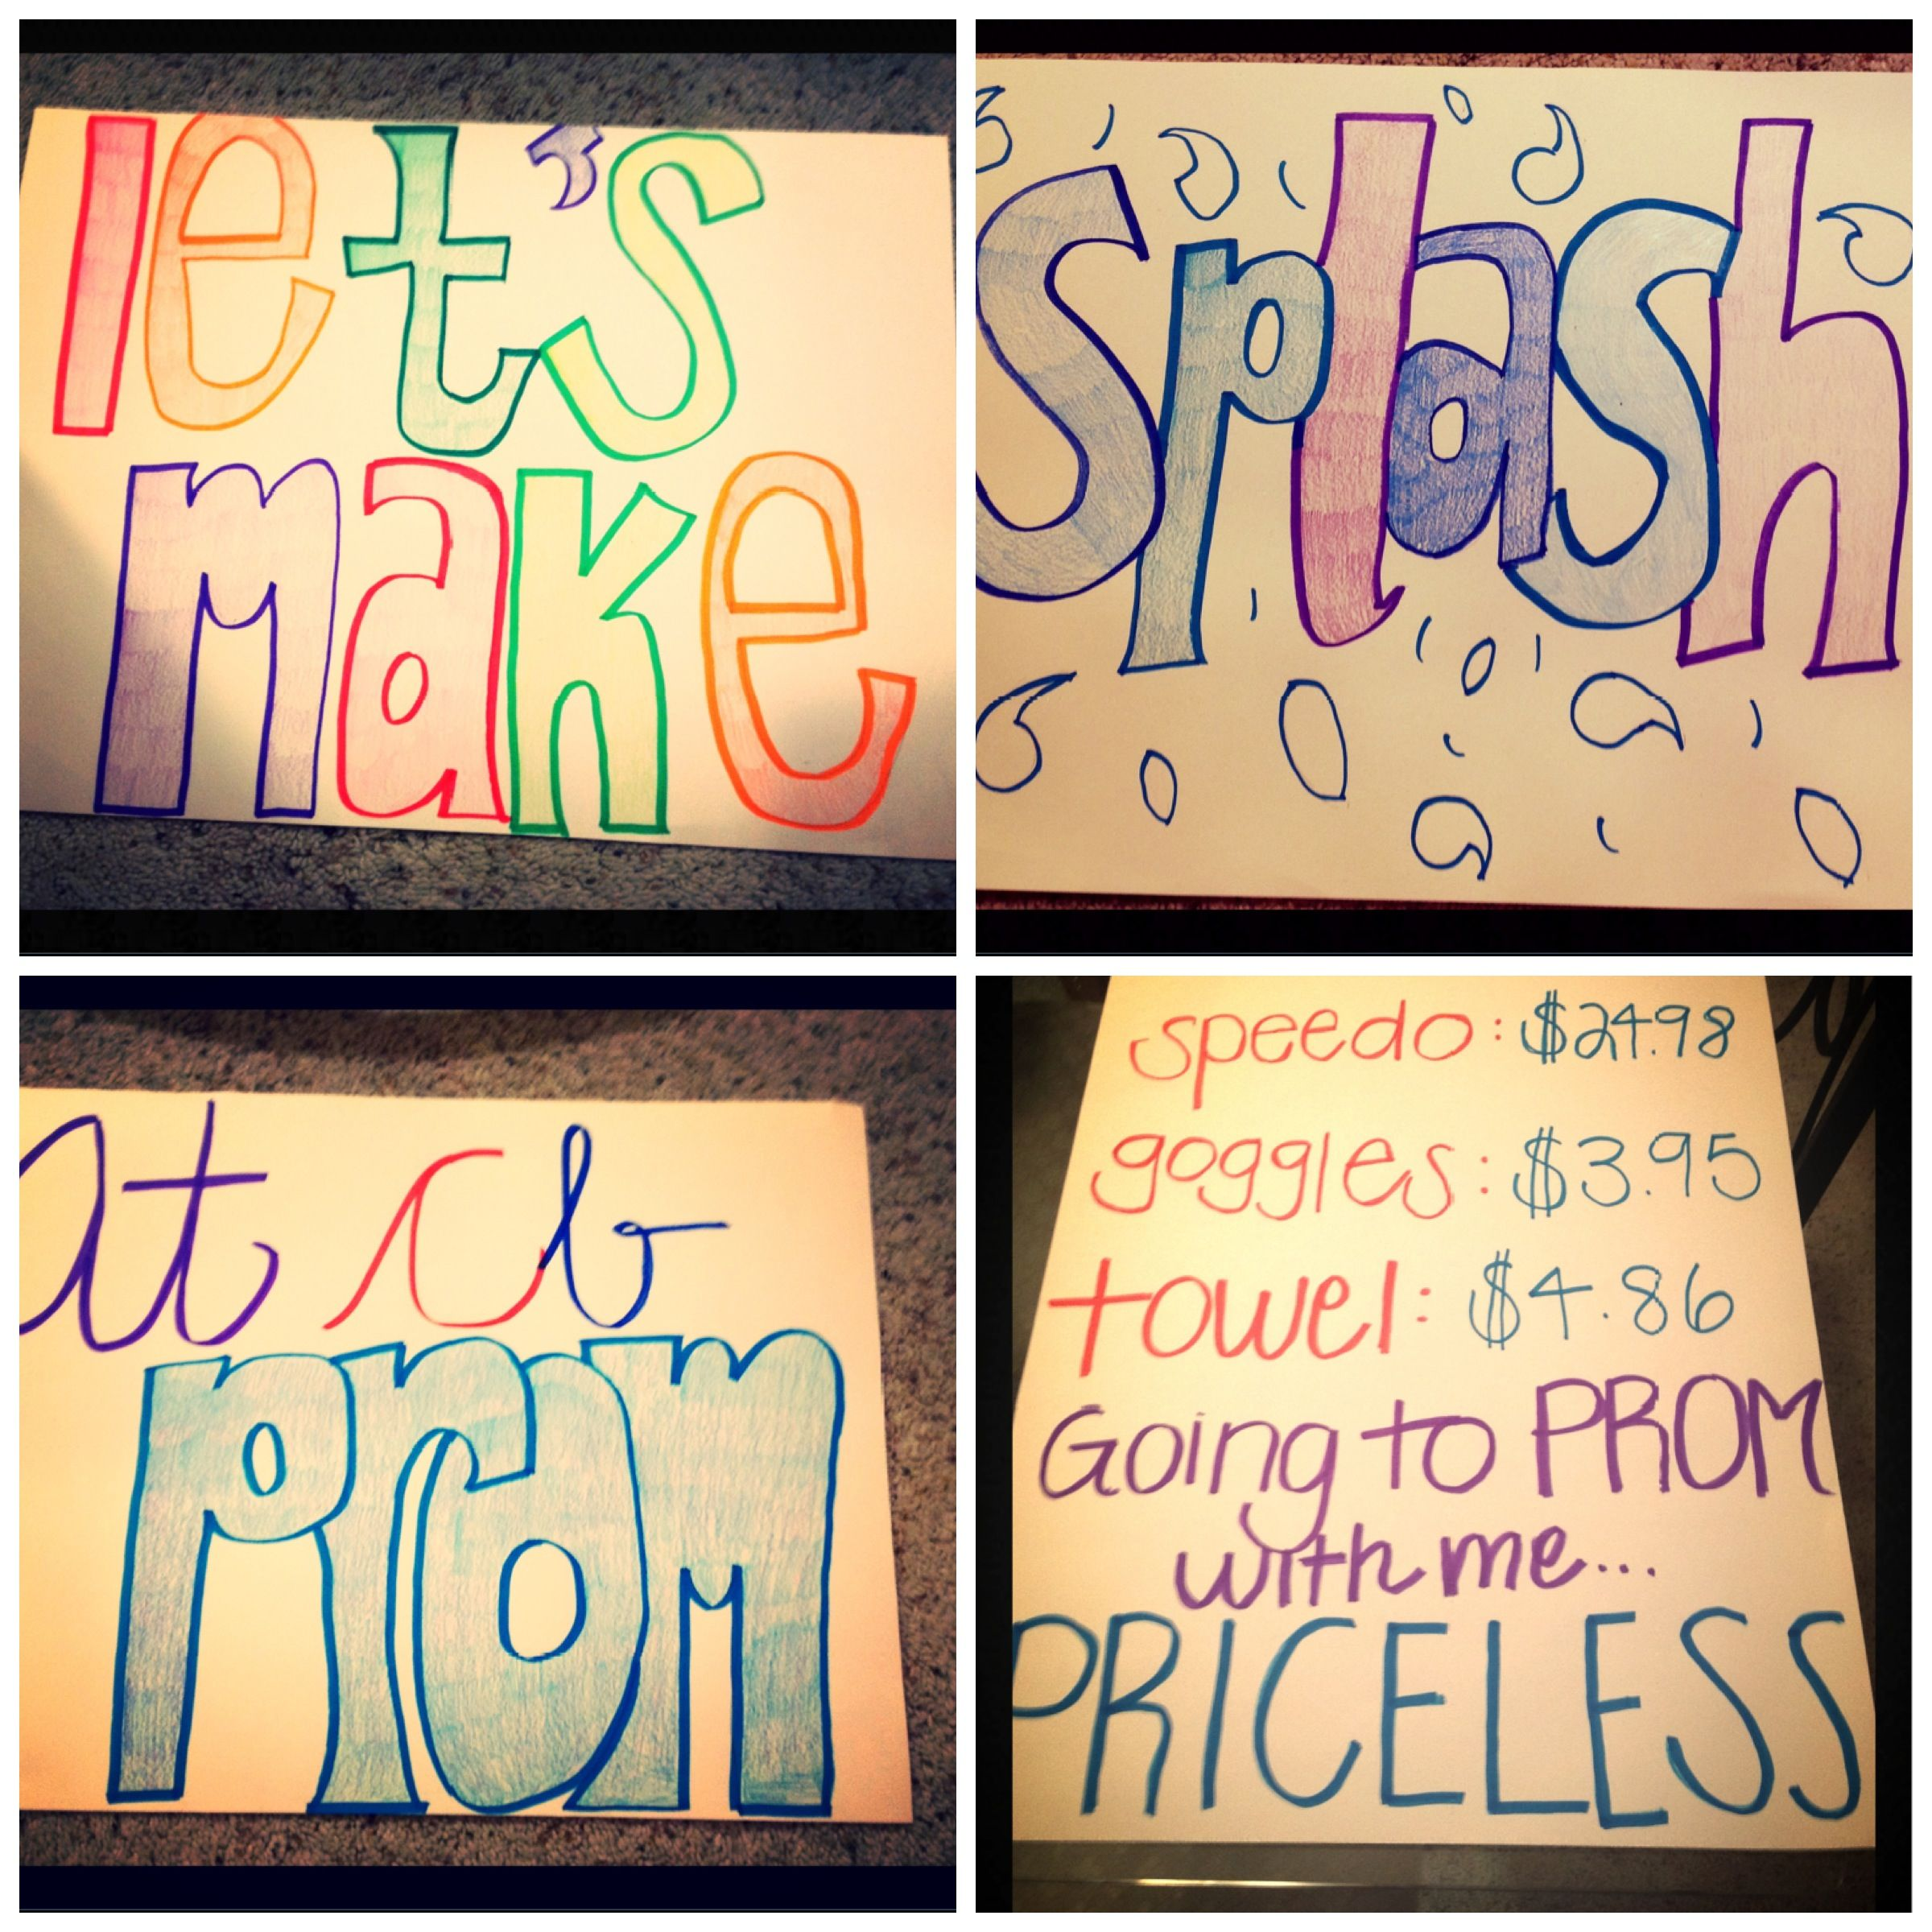 How I Plan On Asking Matt To Prom This Week! So Excited